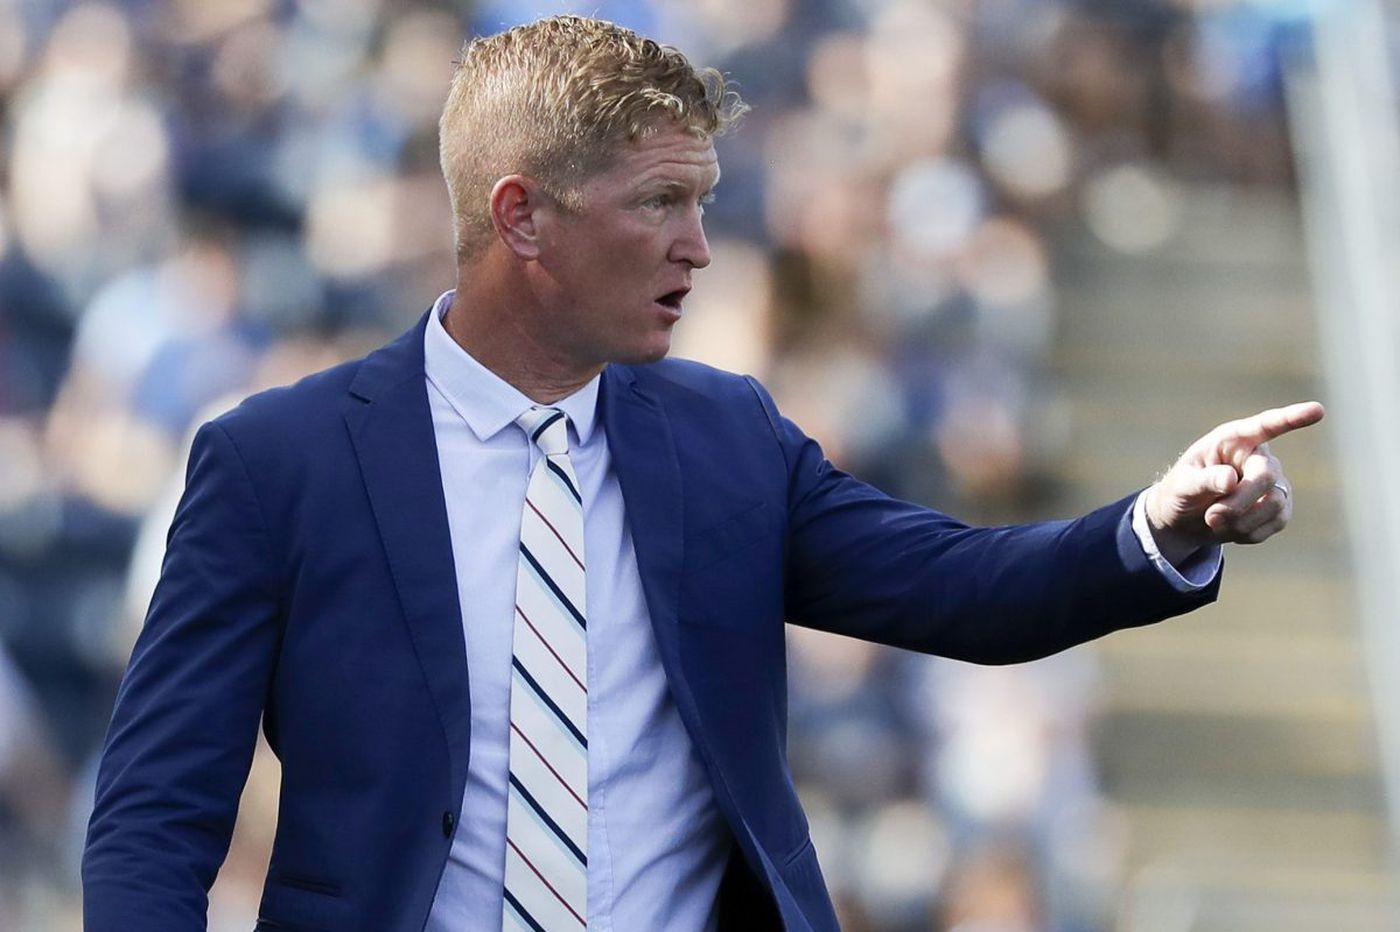 Jim Curtin wants to play the Union's young prospects, but doesn't think they're ready yet